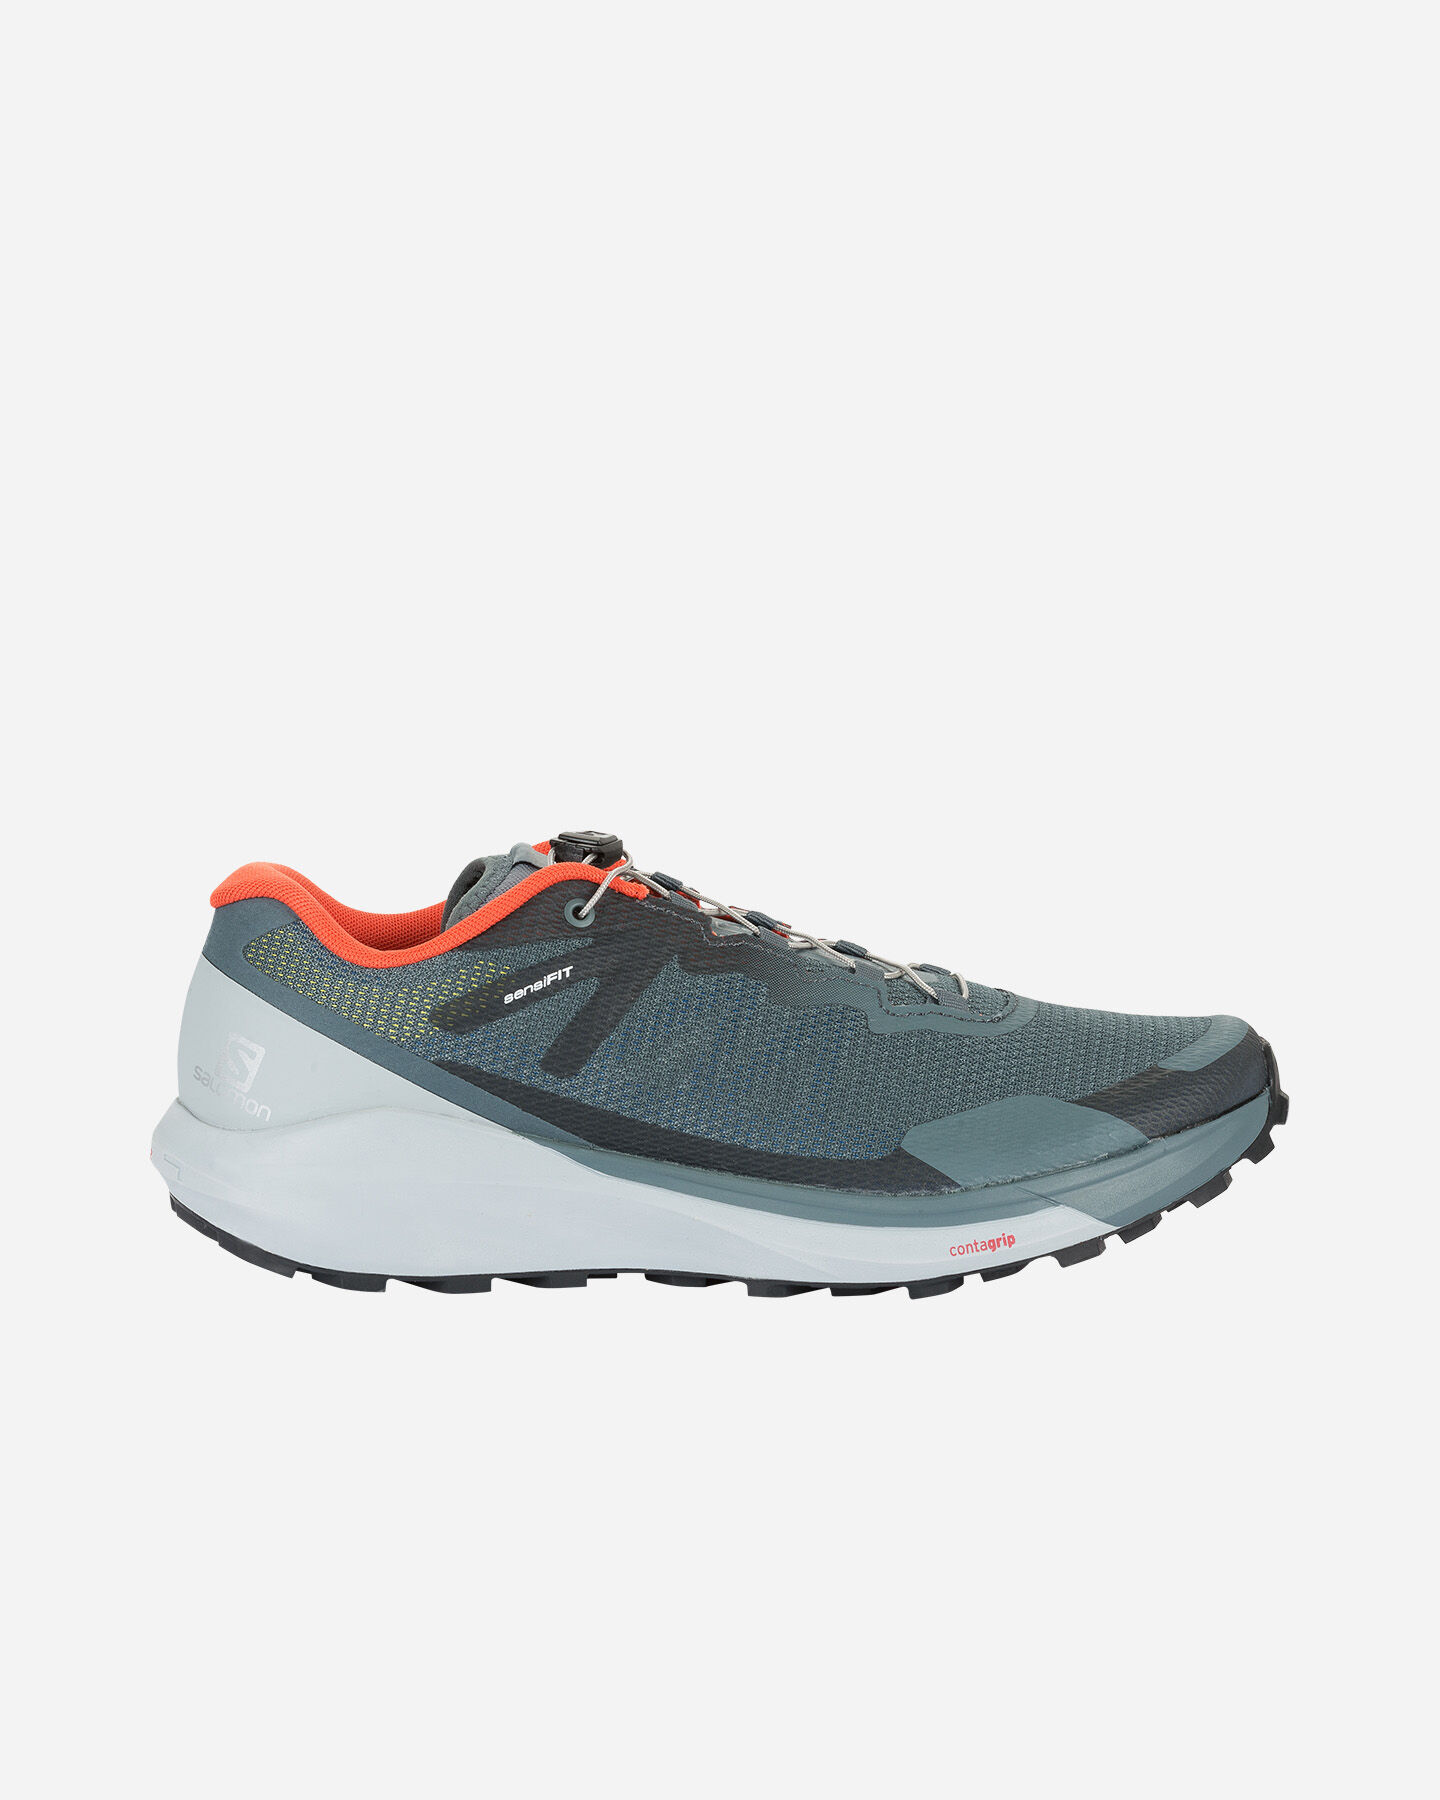 Scarpe running SALOMON SENSE RIDE 3 M S5181428 scatto 0